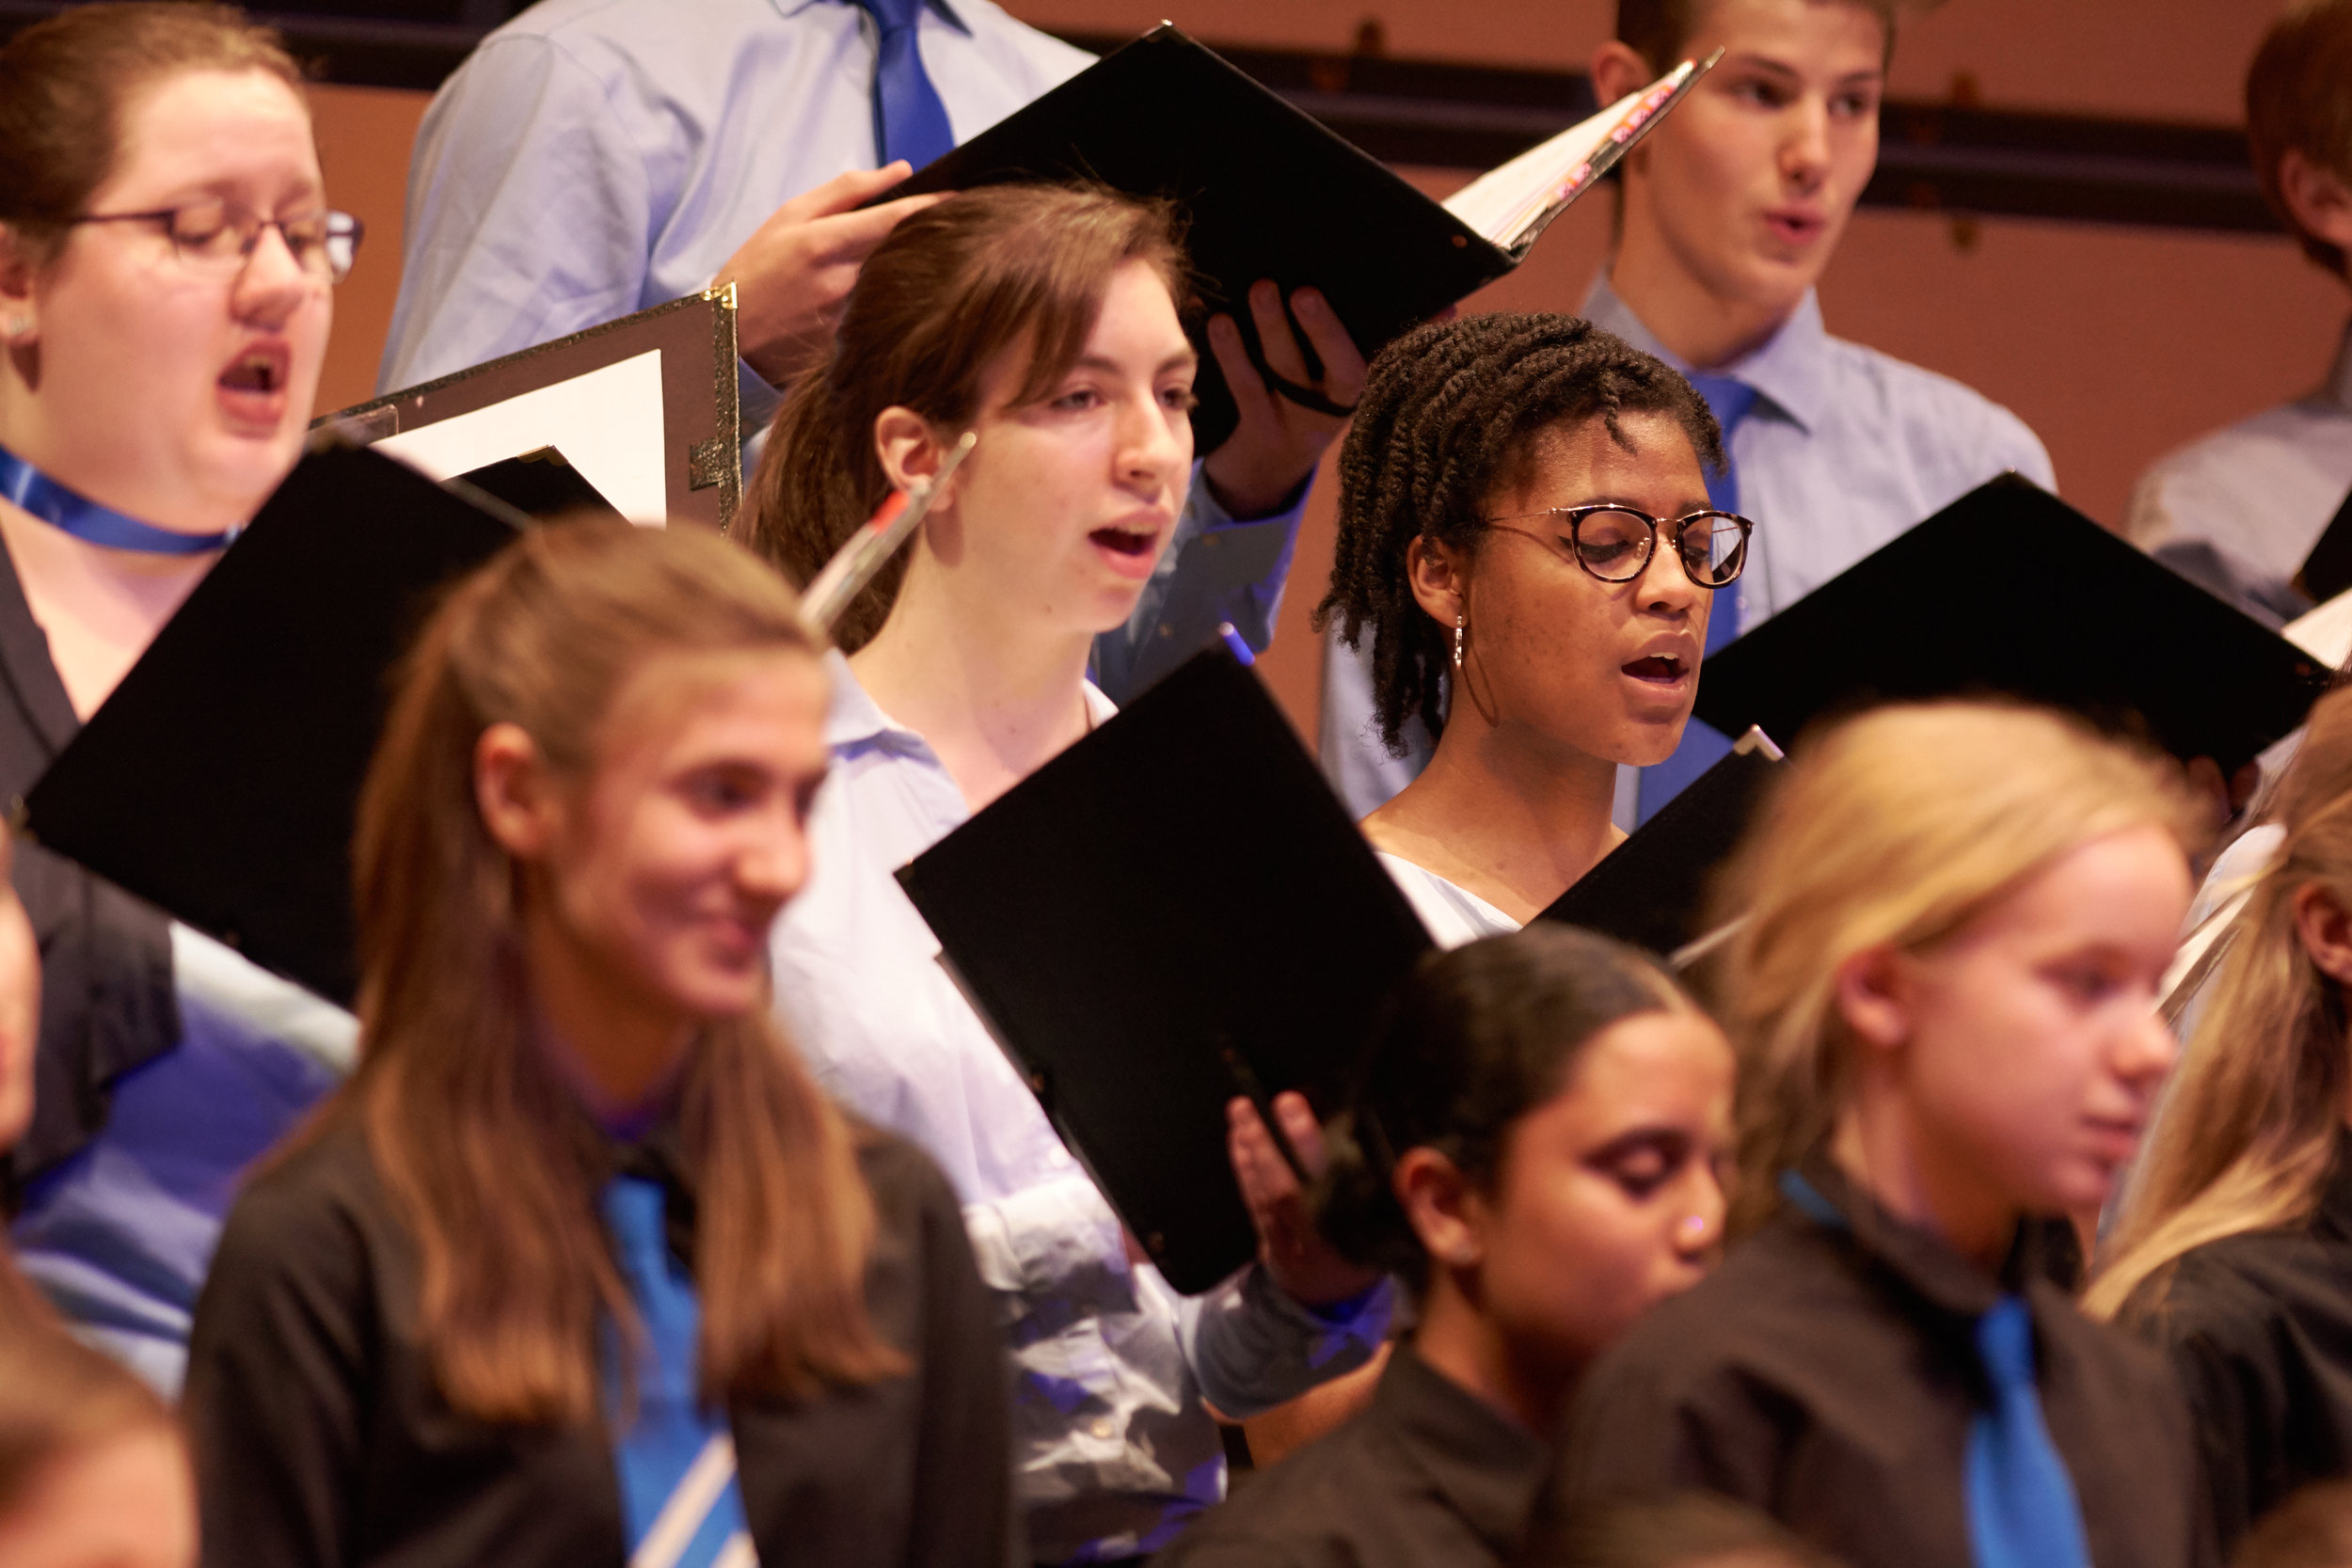 Captivating performances - BCC's choirs perform at top venues across Toronto and beyond.